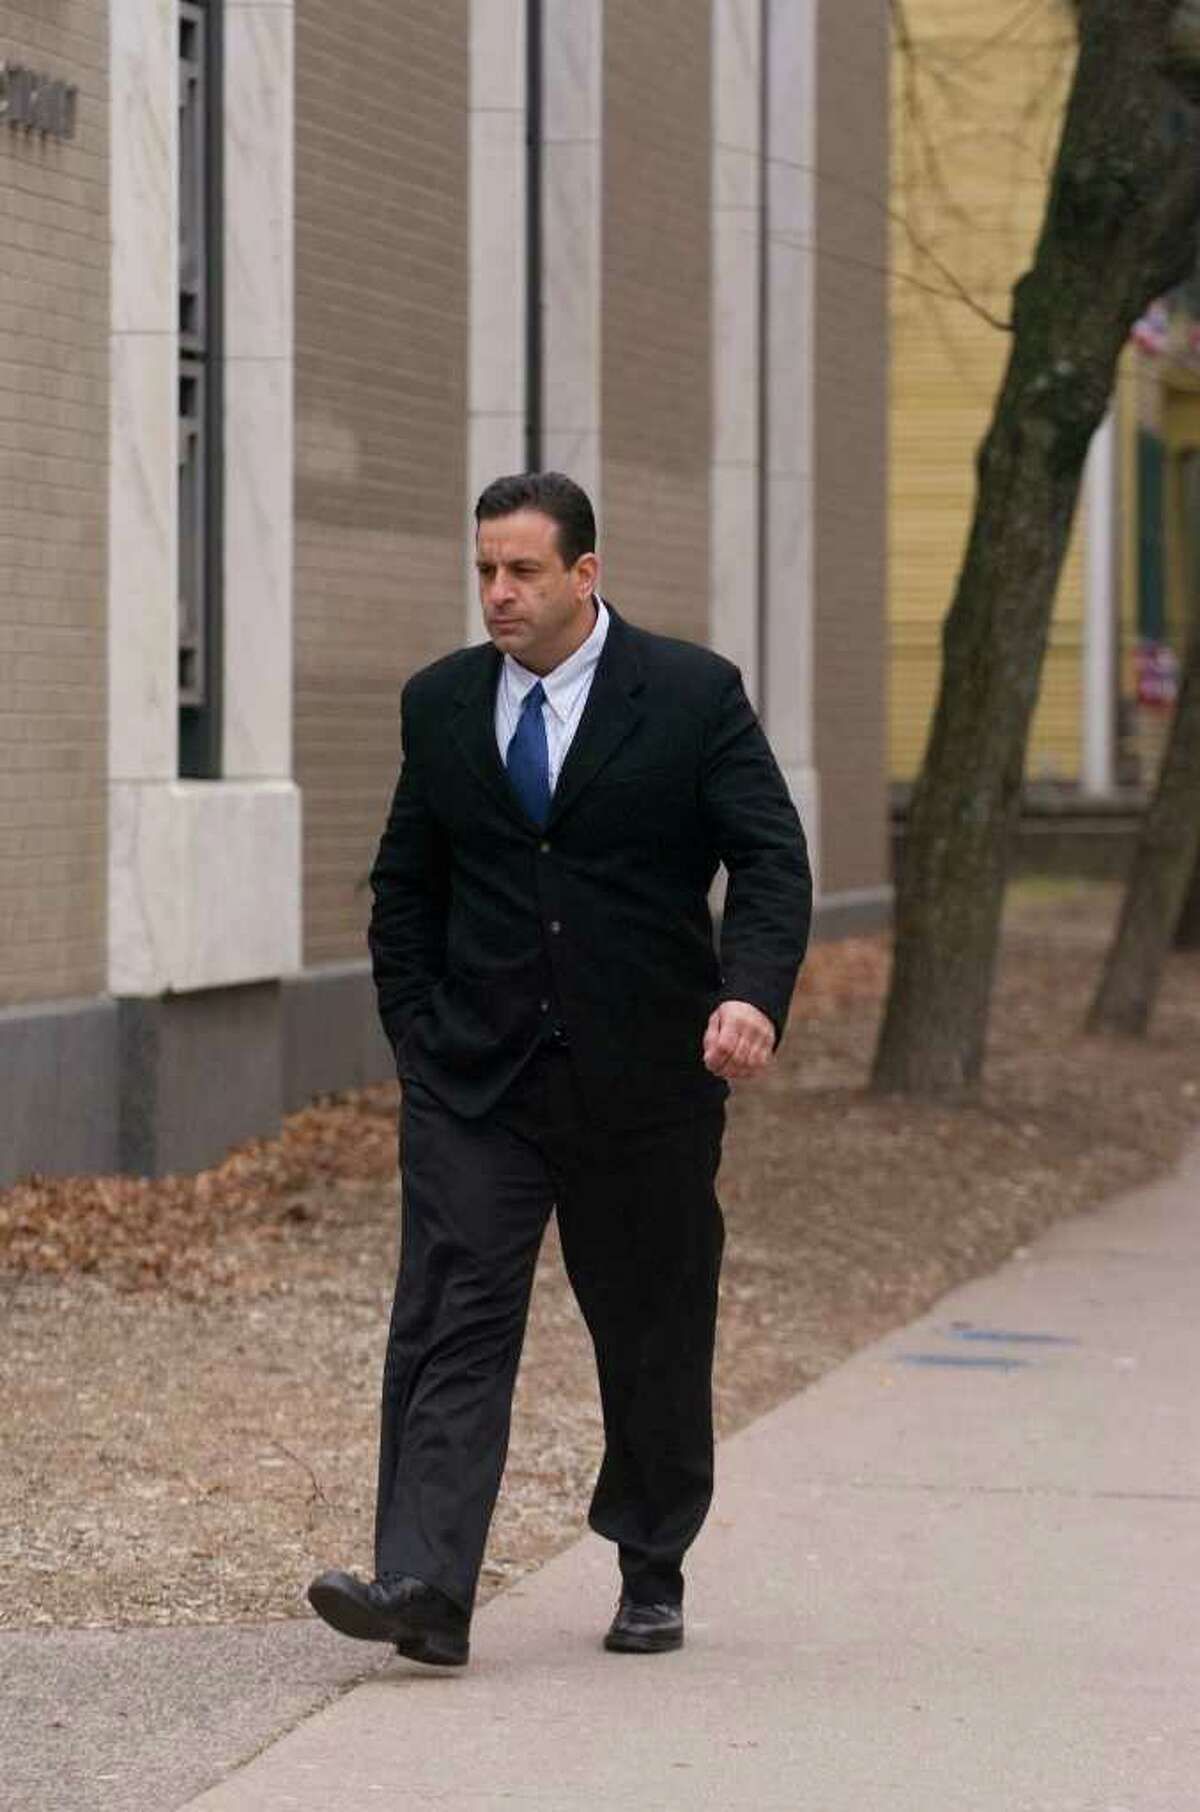 Mark Mansa walks to his hearing at the Abraham A. Ribicoff Federal Building and Courthouse in Hartford on Friday, Dec. 30, 2011. Mansa pleaded guilty to one count of conspiracy to distribute marijuana in excess of 100 kilograms between 2007 and 2011.